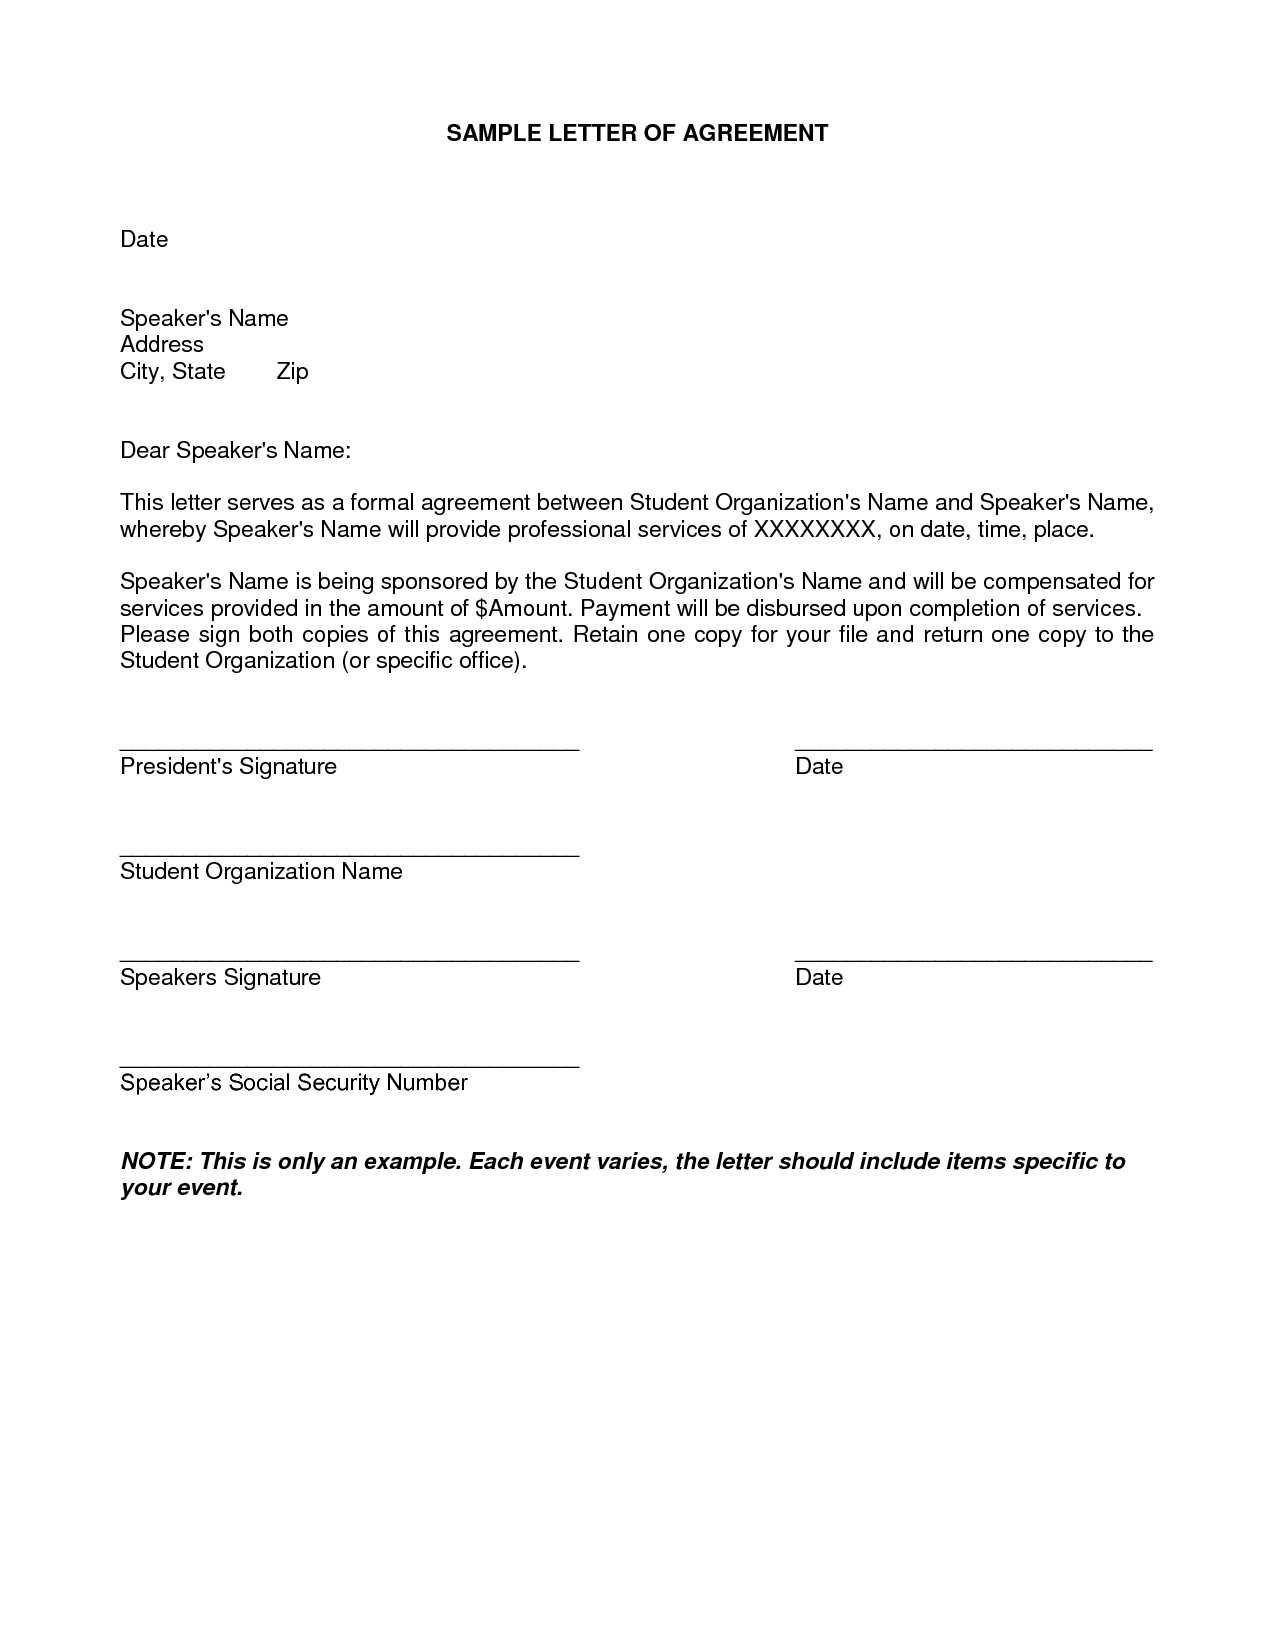 Installment Payment Agreement Letter Template - Installment Payment Agreement Template Awesome Payment Agreement